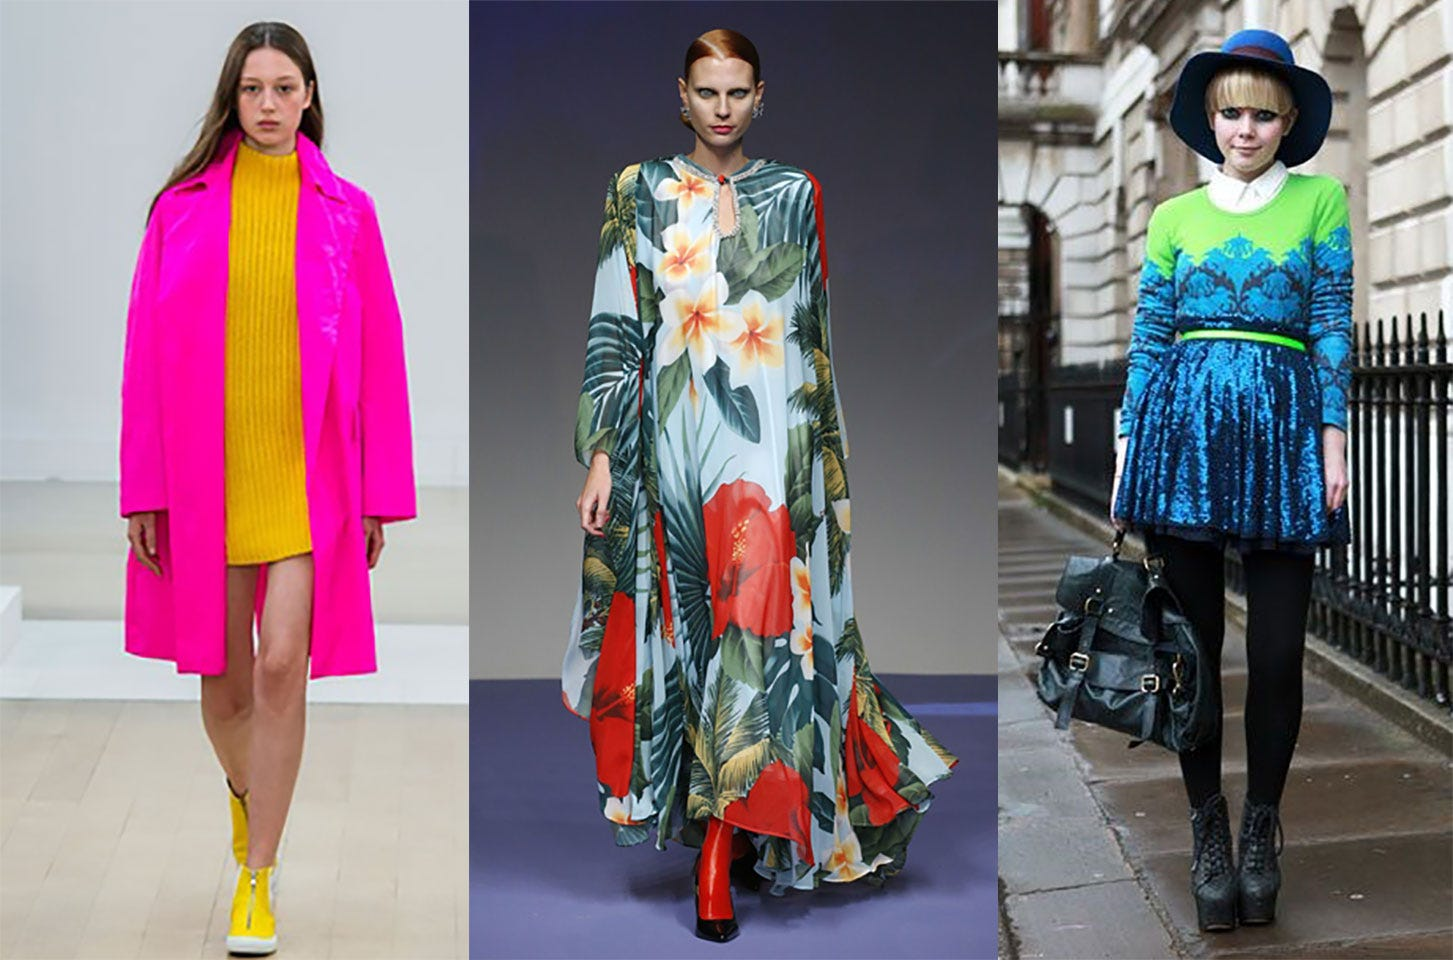 Spring/Summer 2019 Fashion Trends from London Fashion Week: 'Summer Meadow'